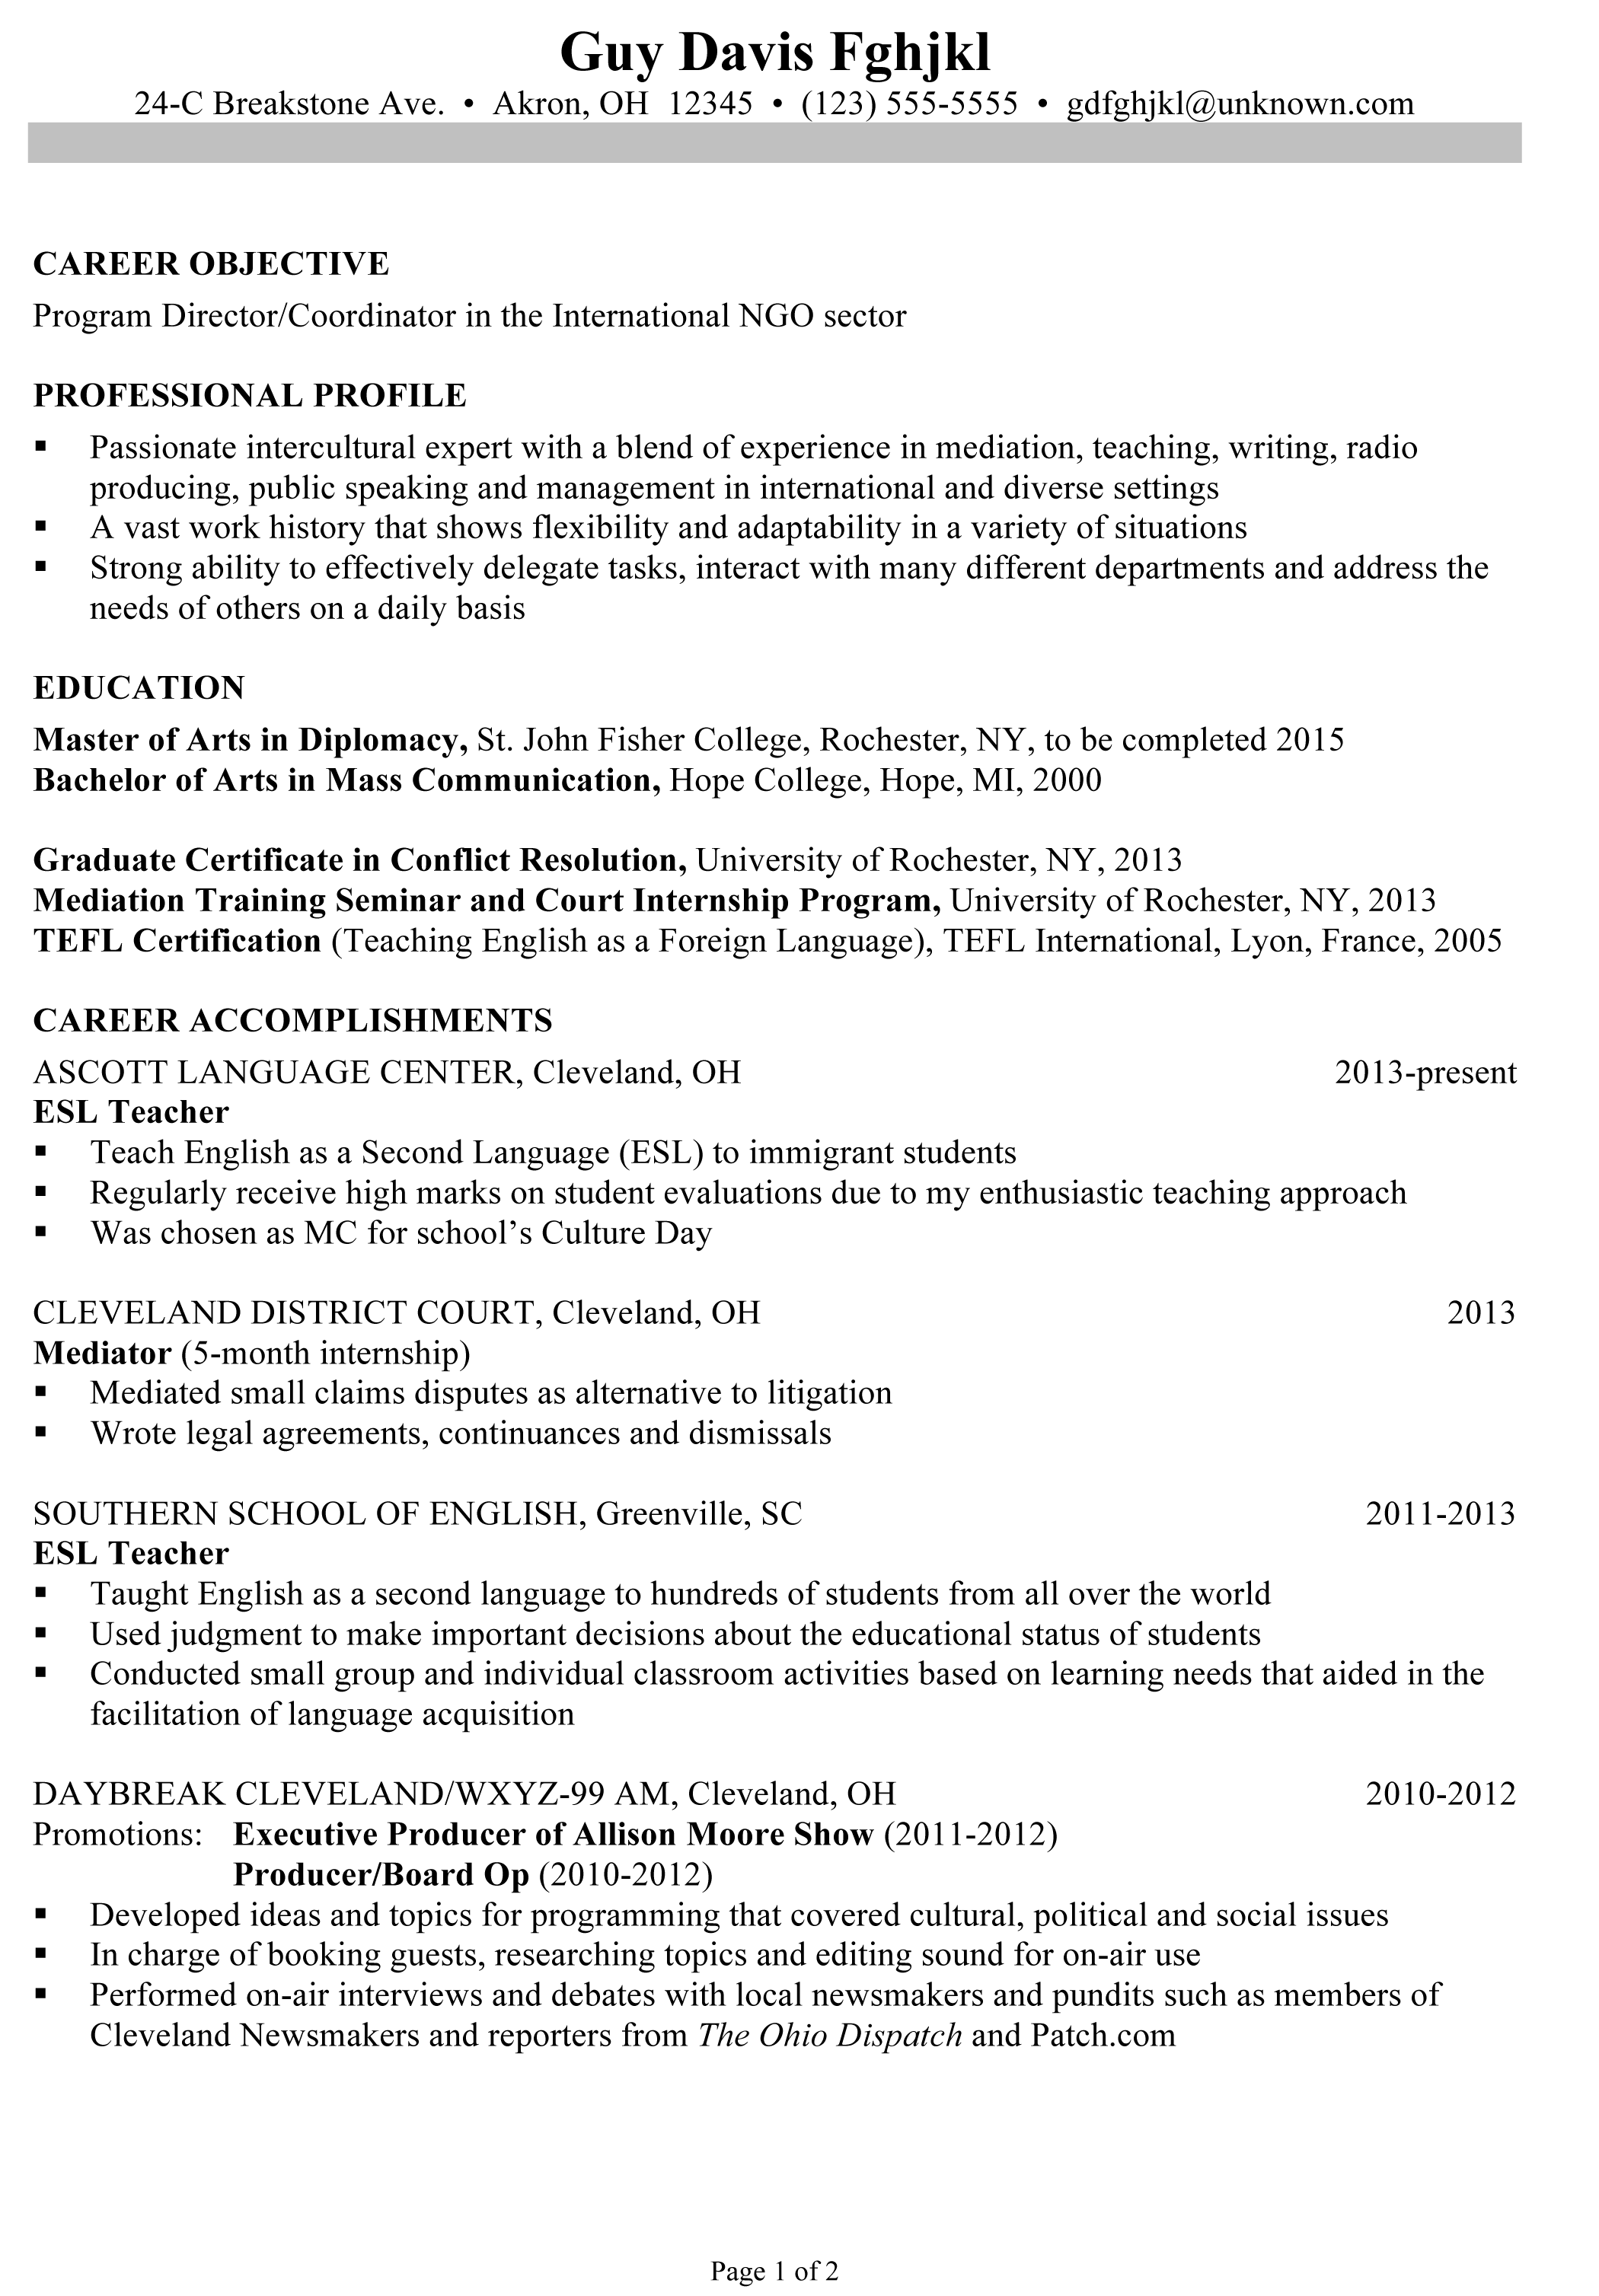 Resume Examples Free And Cover Letter Maker Create Online Example Resumes